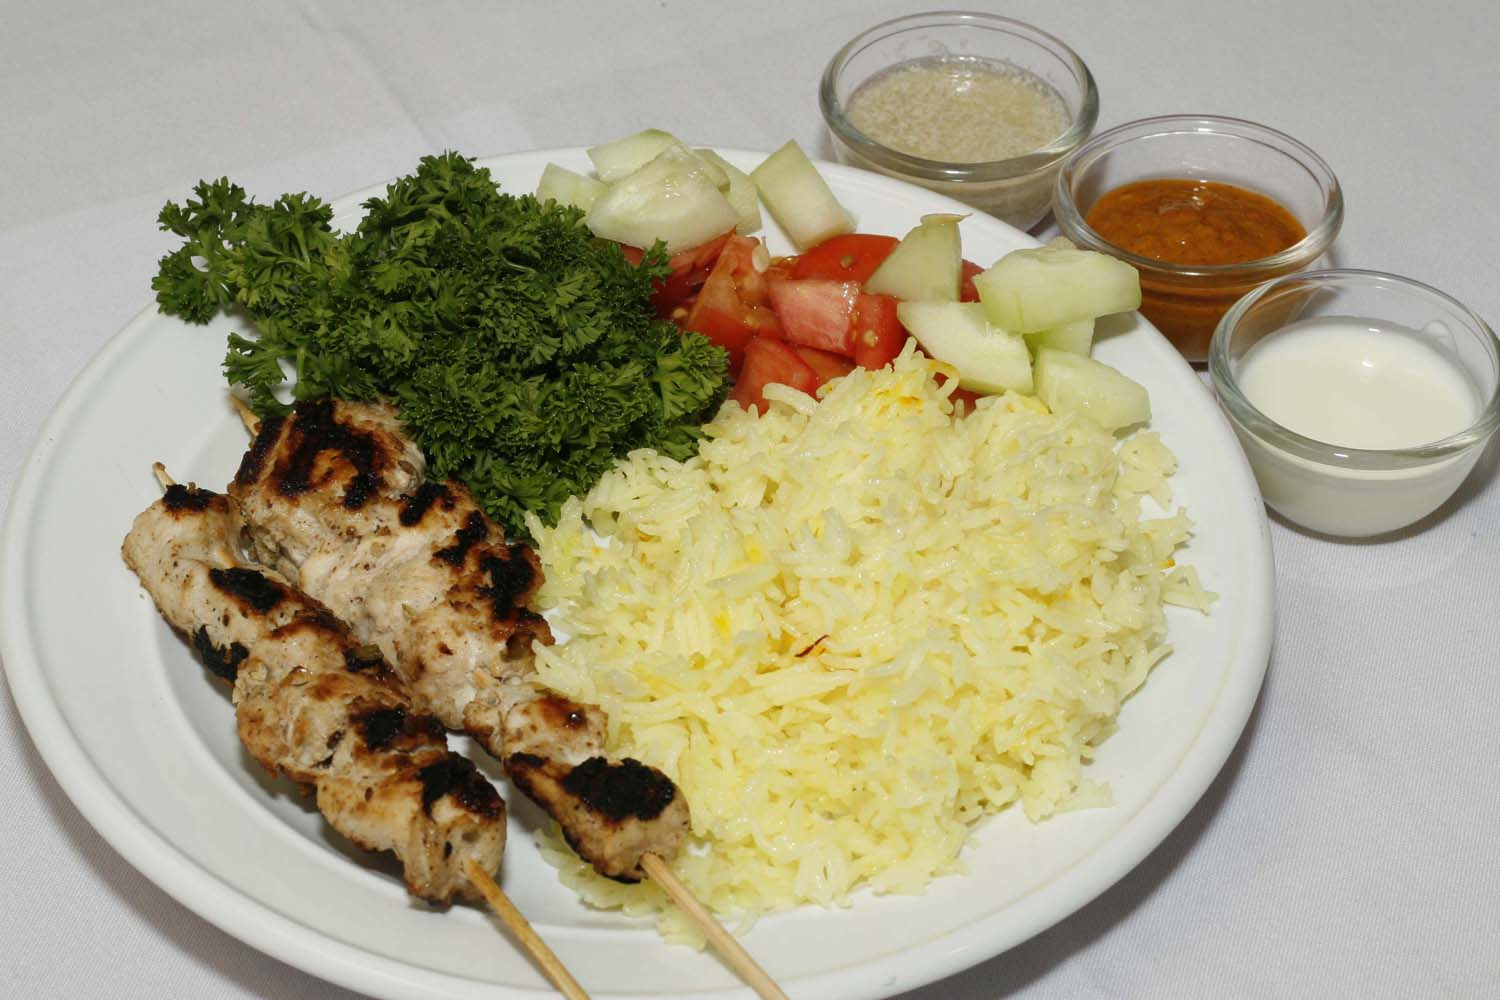 murgh makhmali kebab chicken barbecue continental